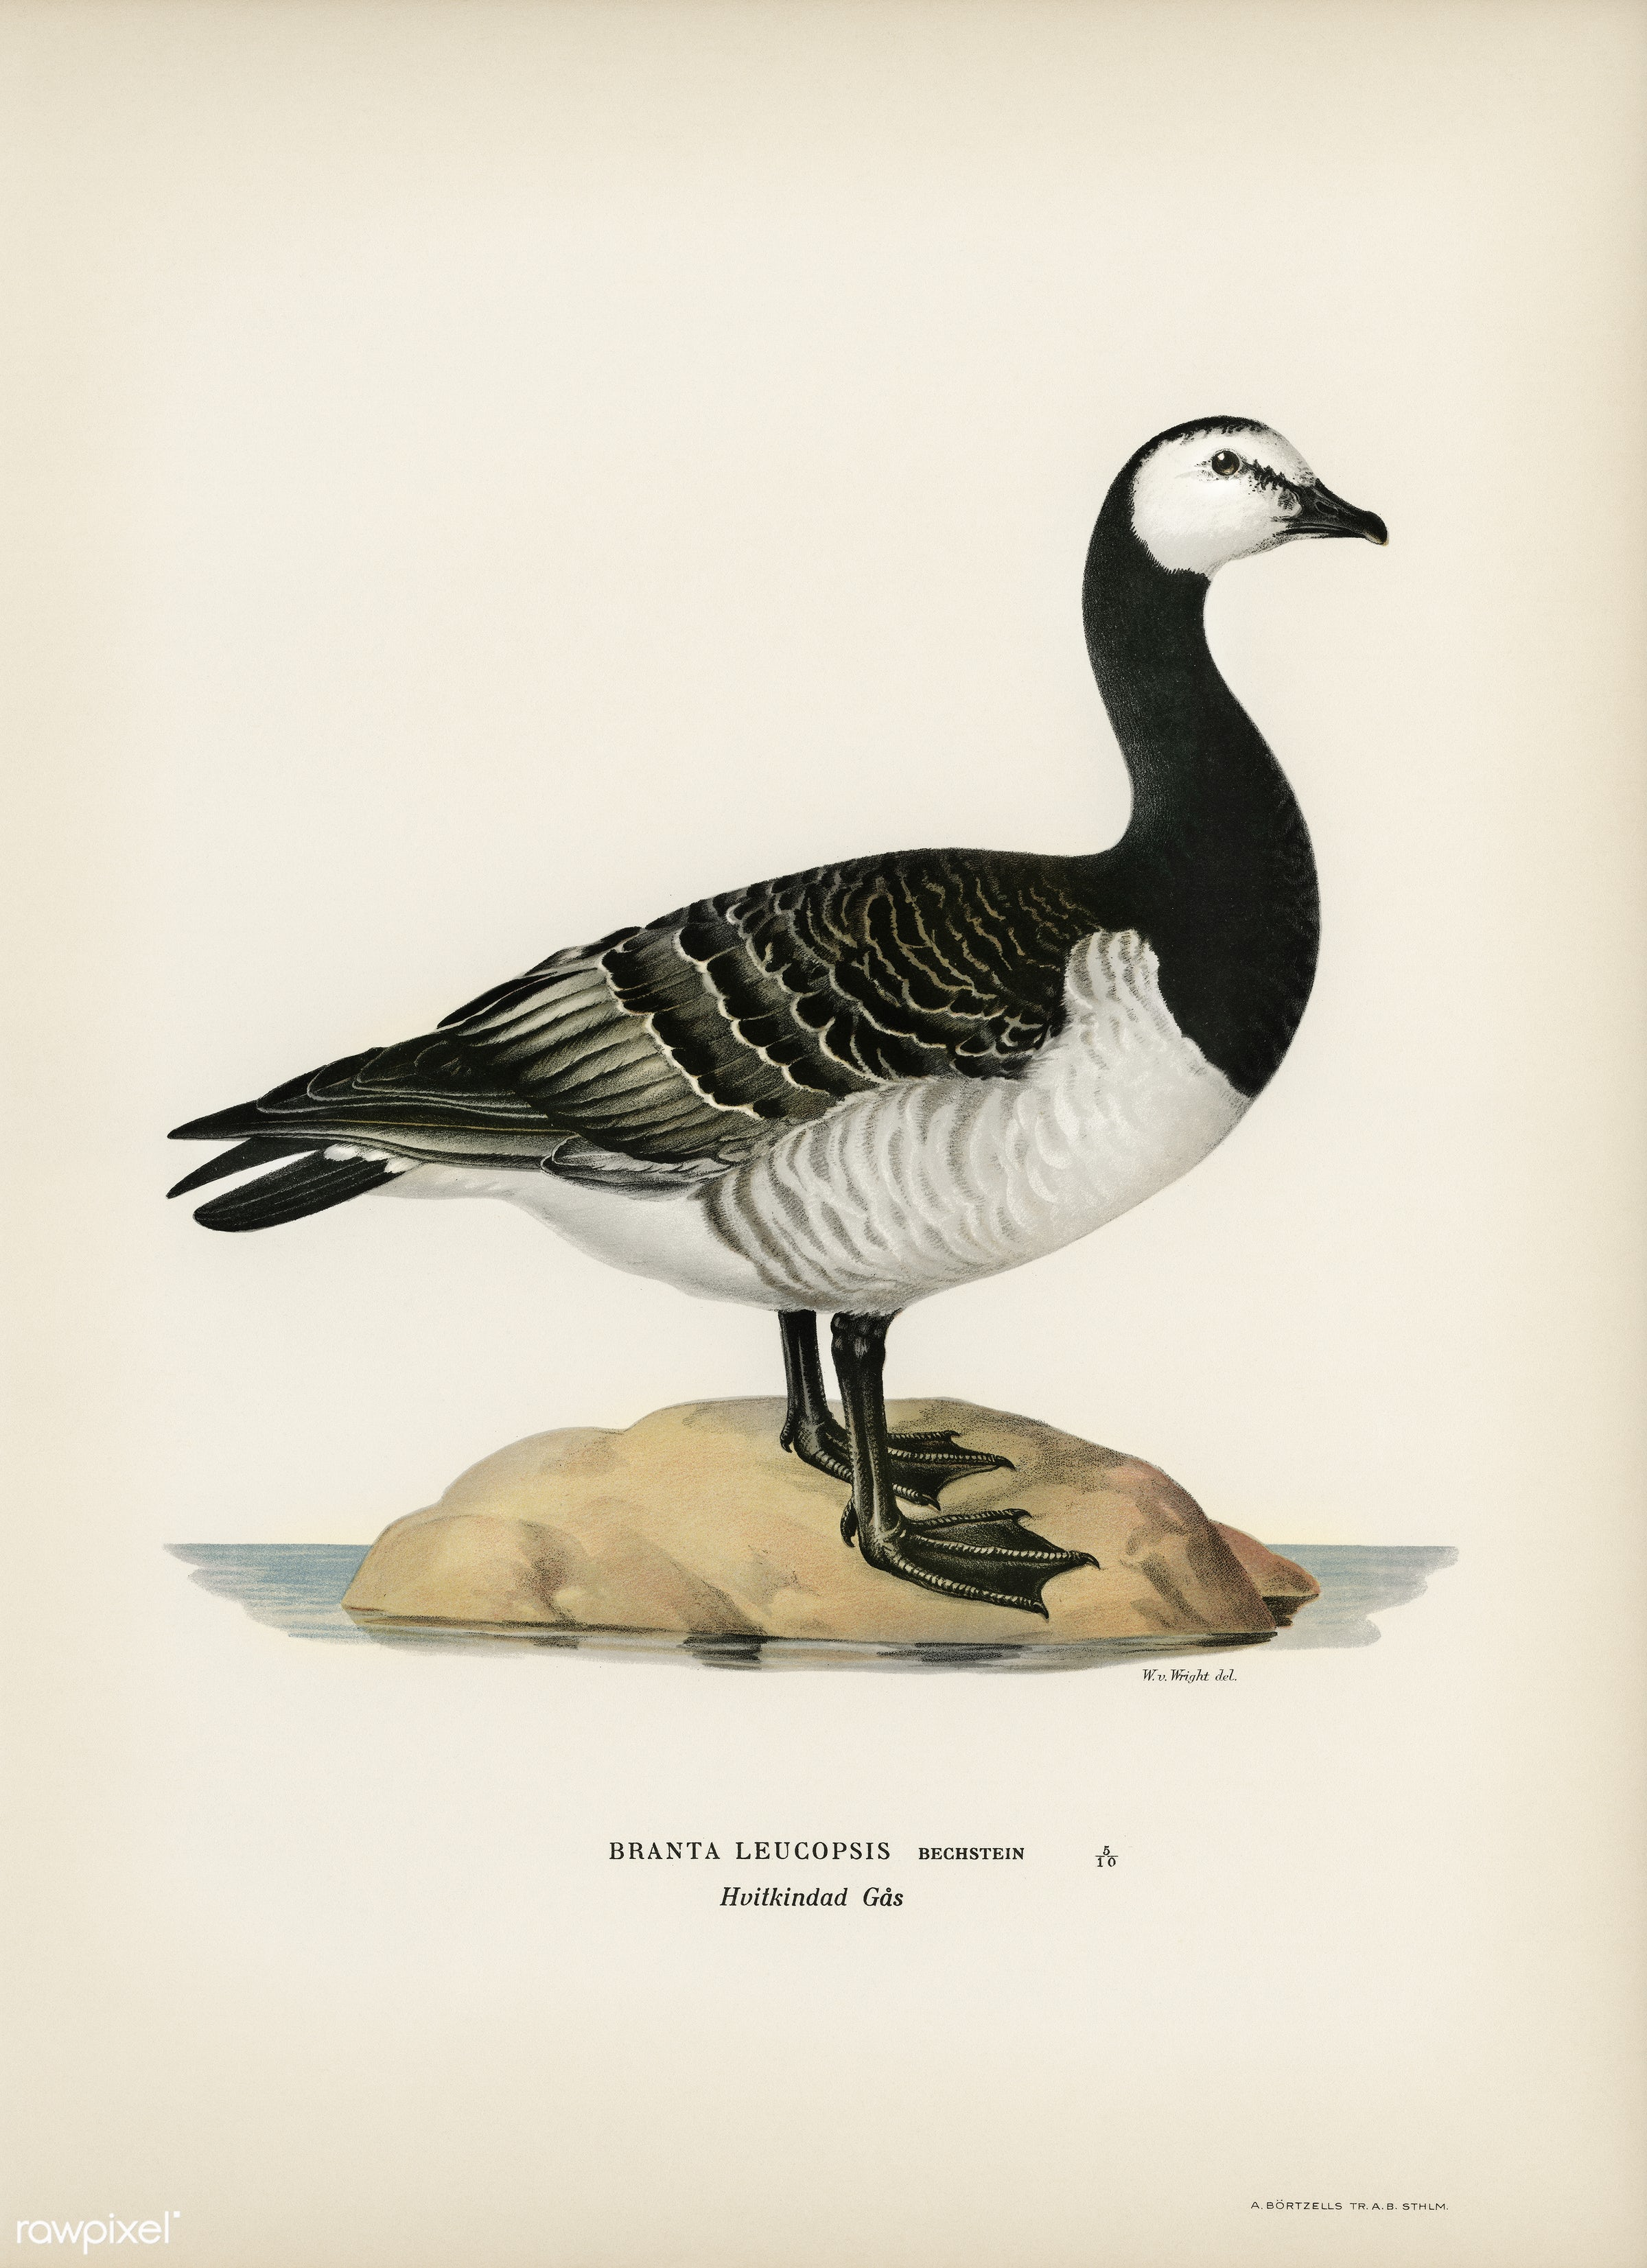 Barnacle Goose (BRANTA LEUCOPSIS) illustrated by the von Wright brothers. Digitally enhanced from our own 1929 folio version...